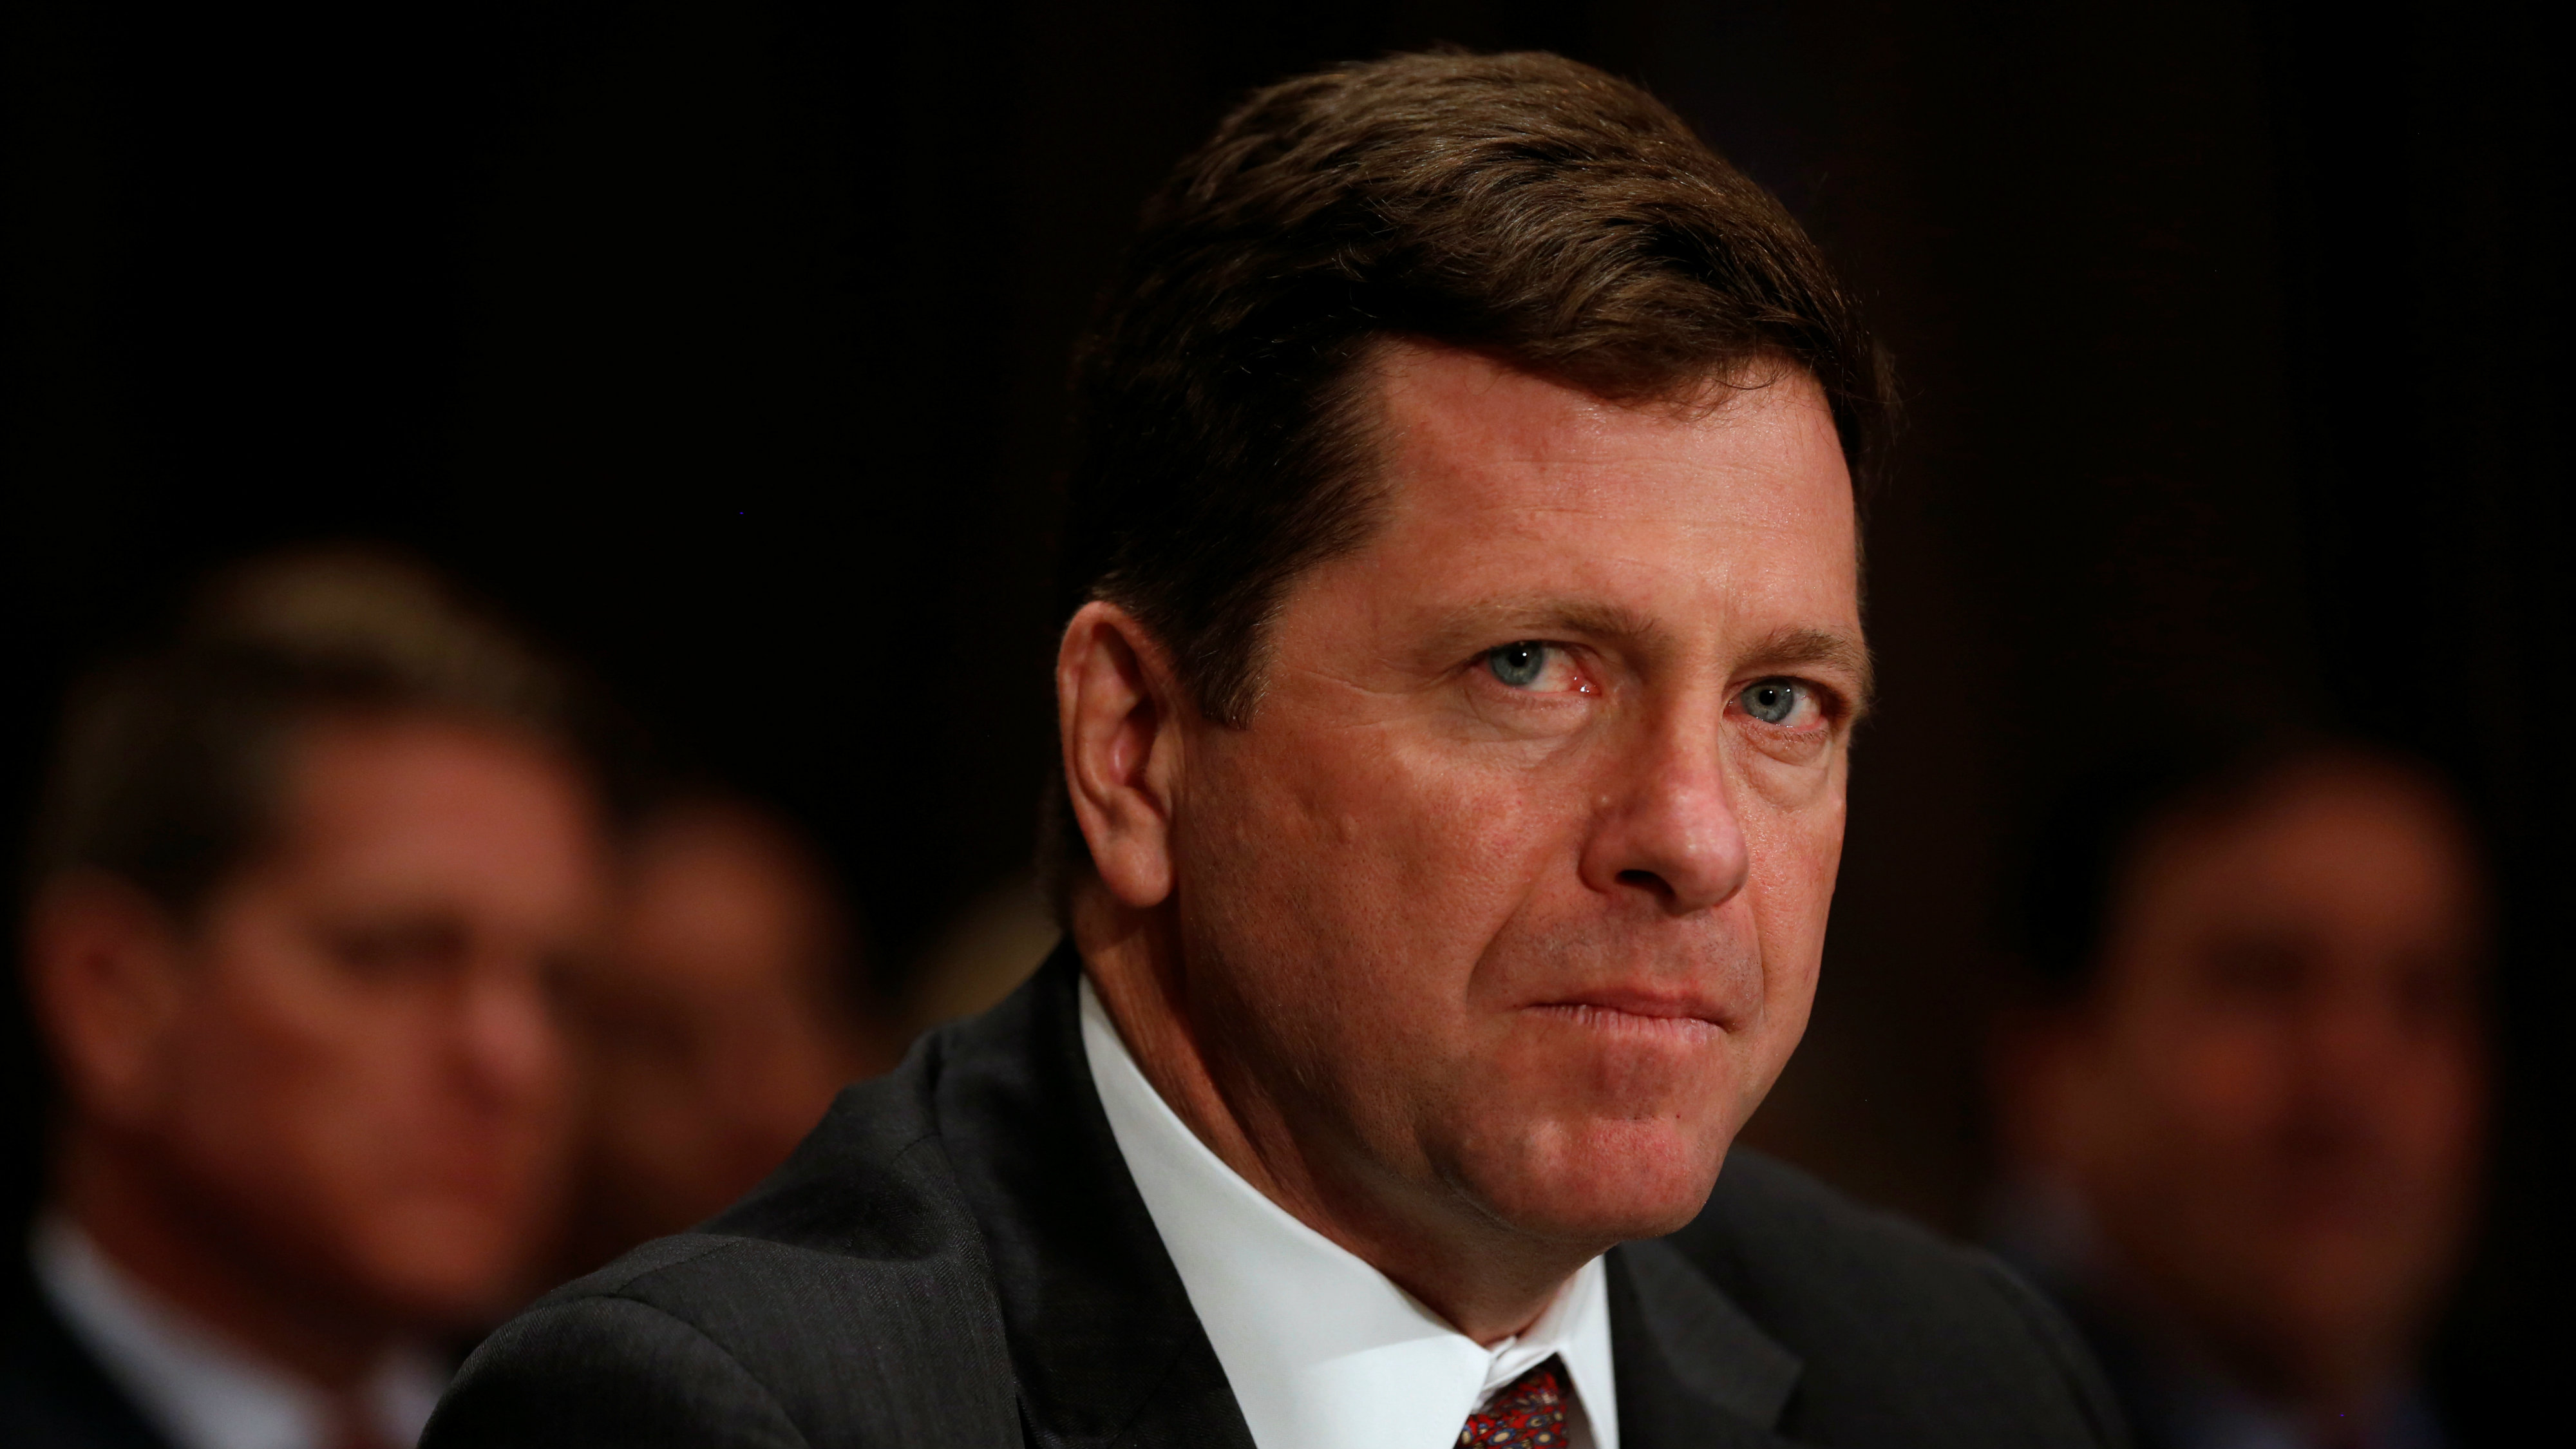 Jay Clayton testifies at a Senate Banking, Housing and Urban Affairs Committee hearing on his nomination of to be chairman of the Securities and Exchange Commission (SEC) on Capitol Hill in Washington, U.S. March 23, 2017.